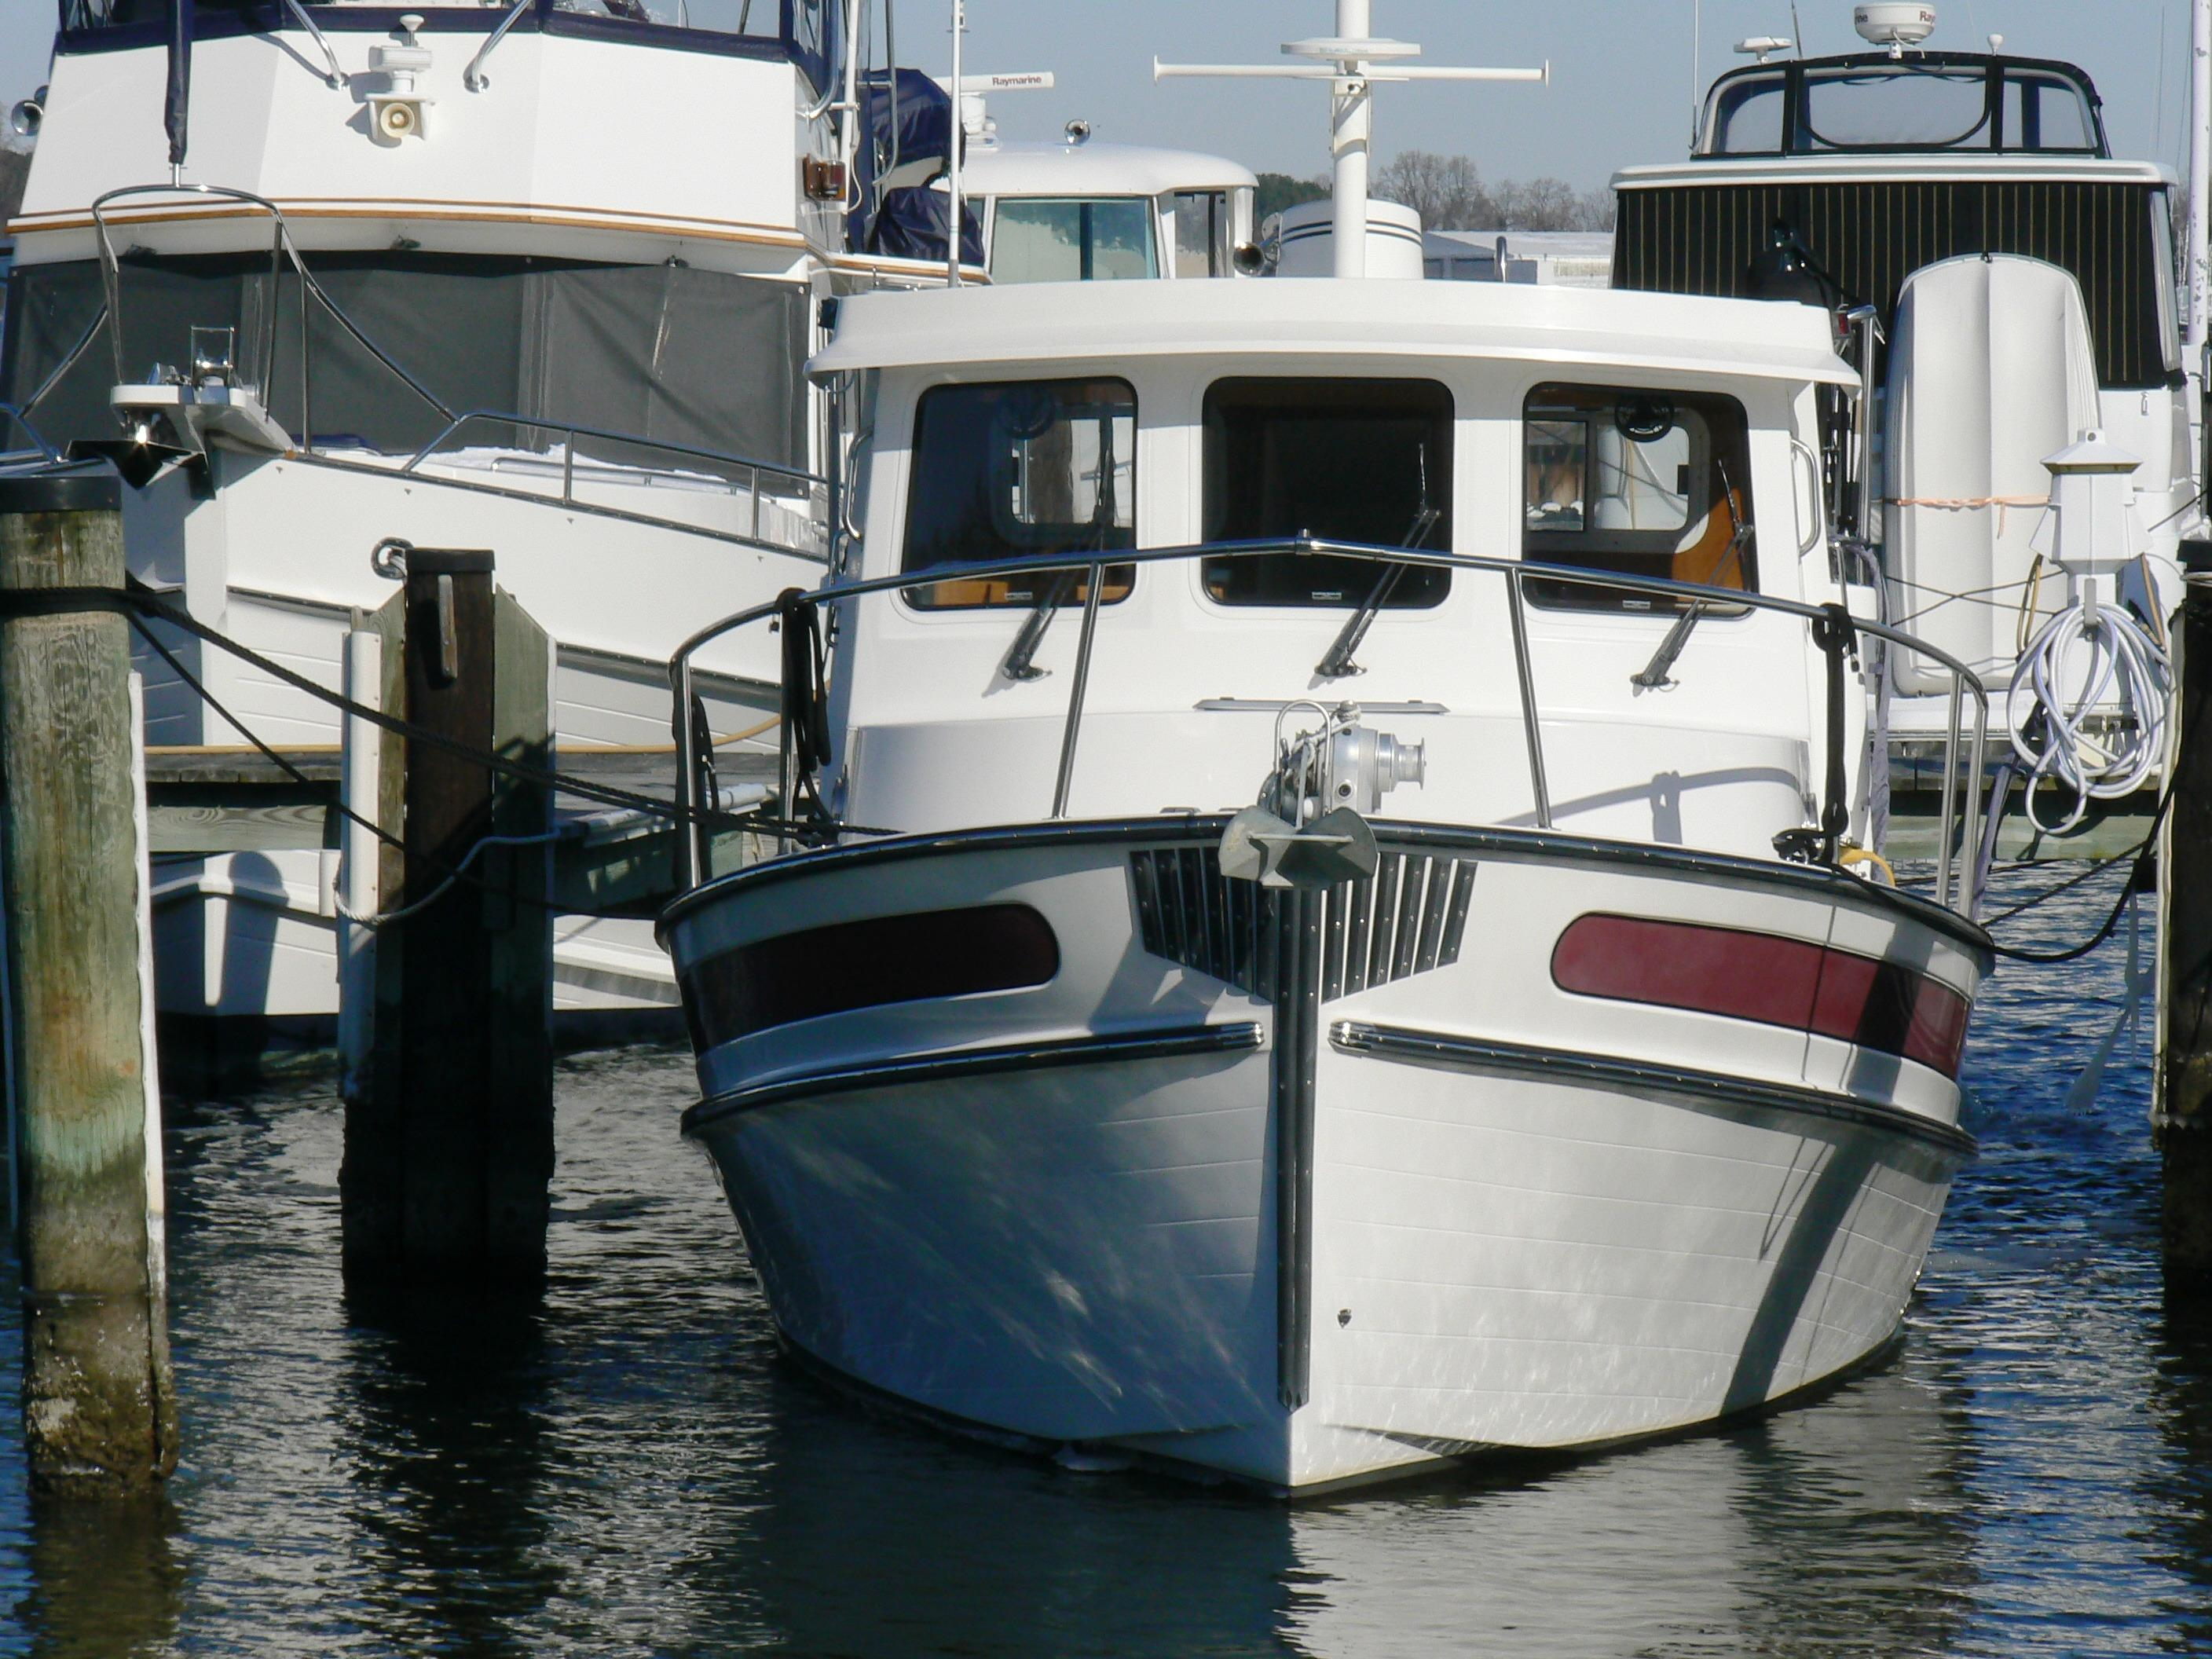 Nordic Tugs 32' Pilot House, Annapolis, MD